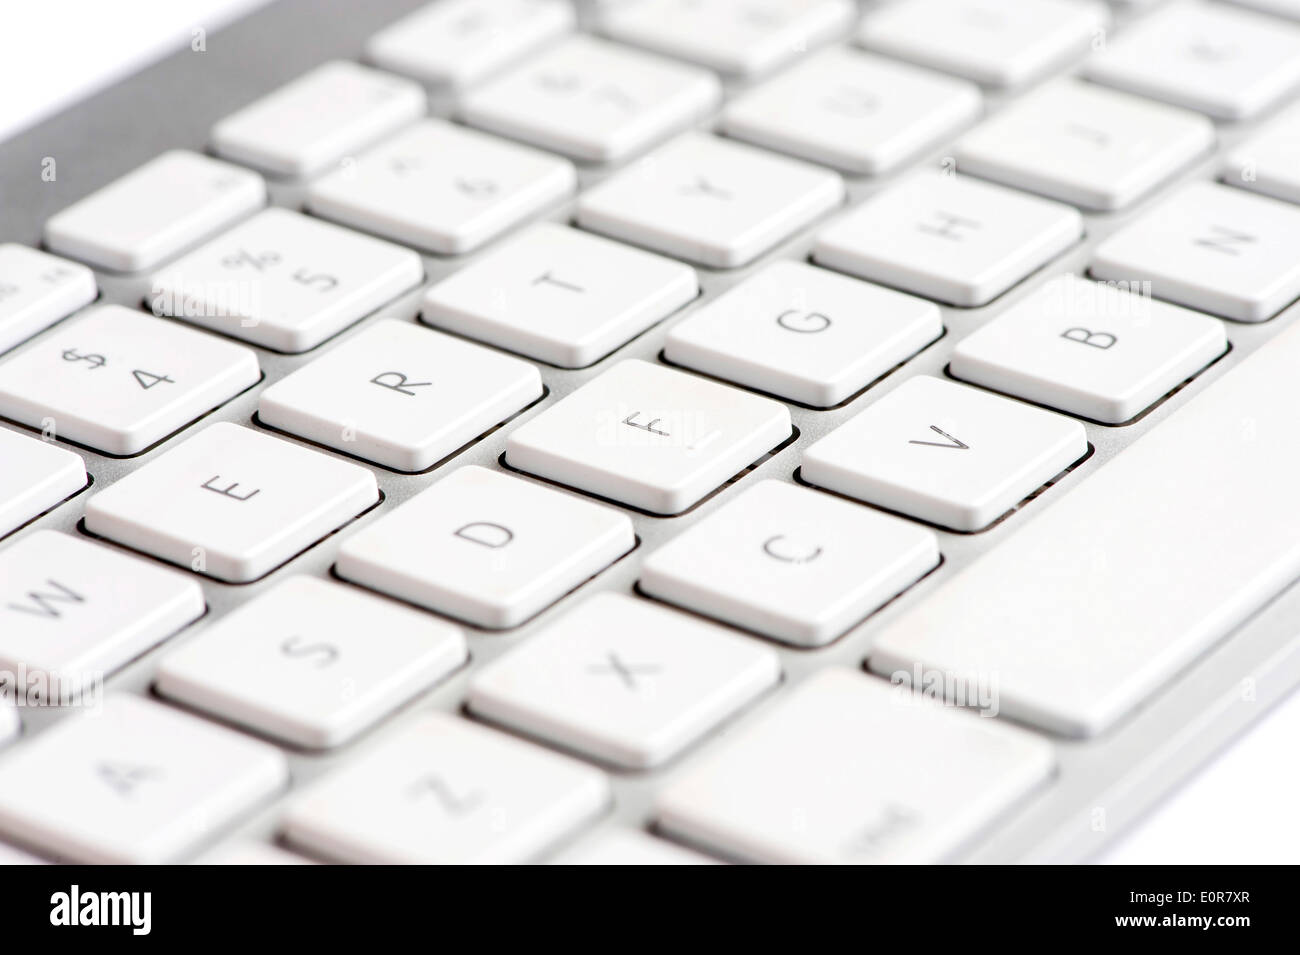 Apple mac white Keyboard focused on the letter F - Stock Image